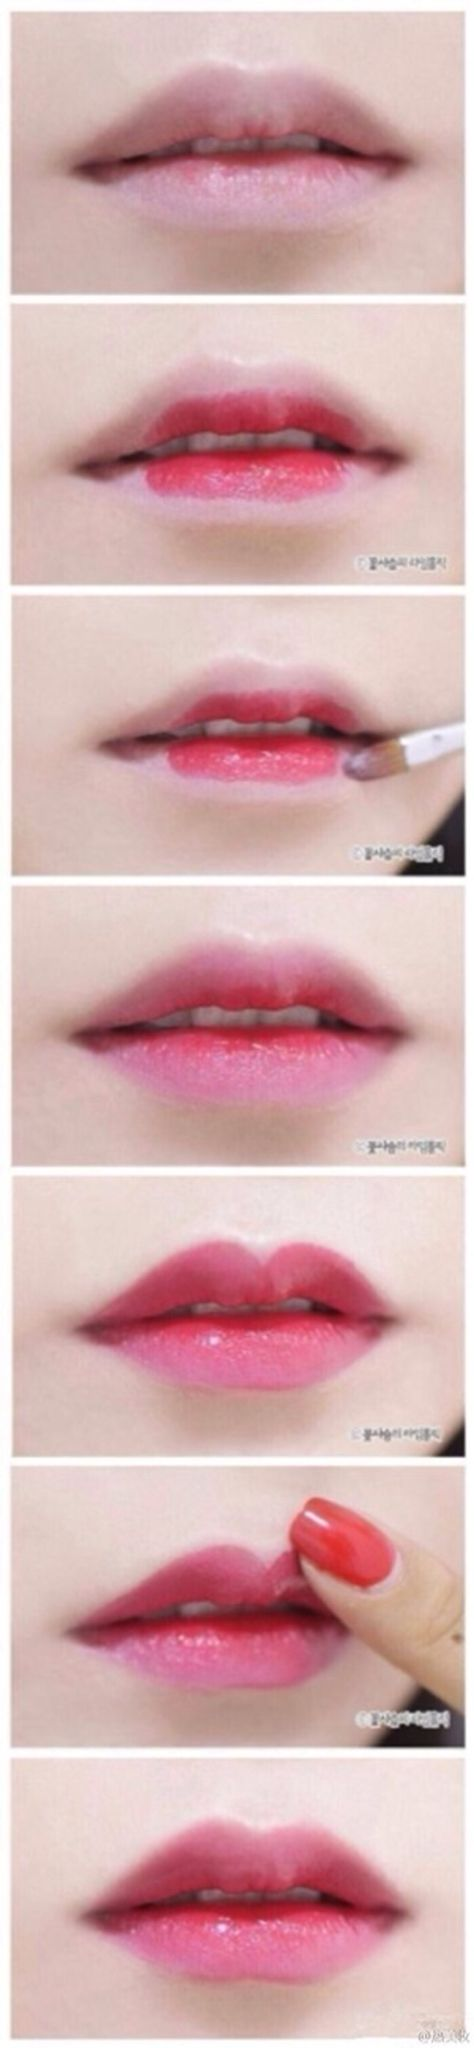 Lip makeup                                                                                                                                                                                 More